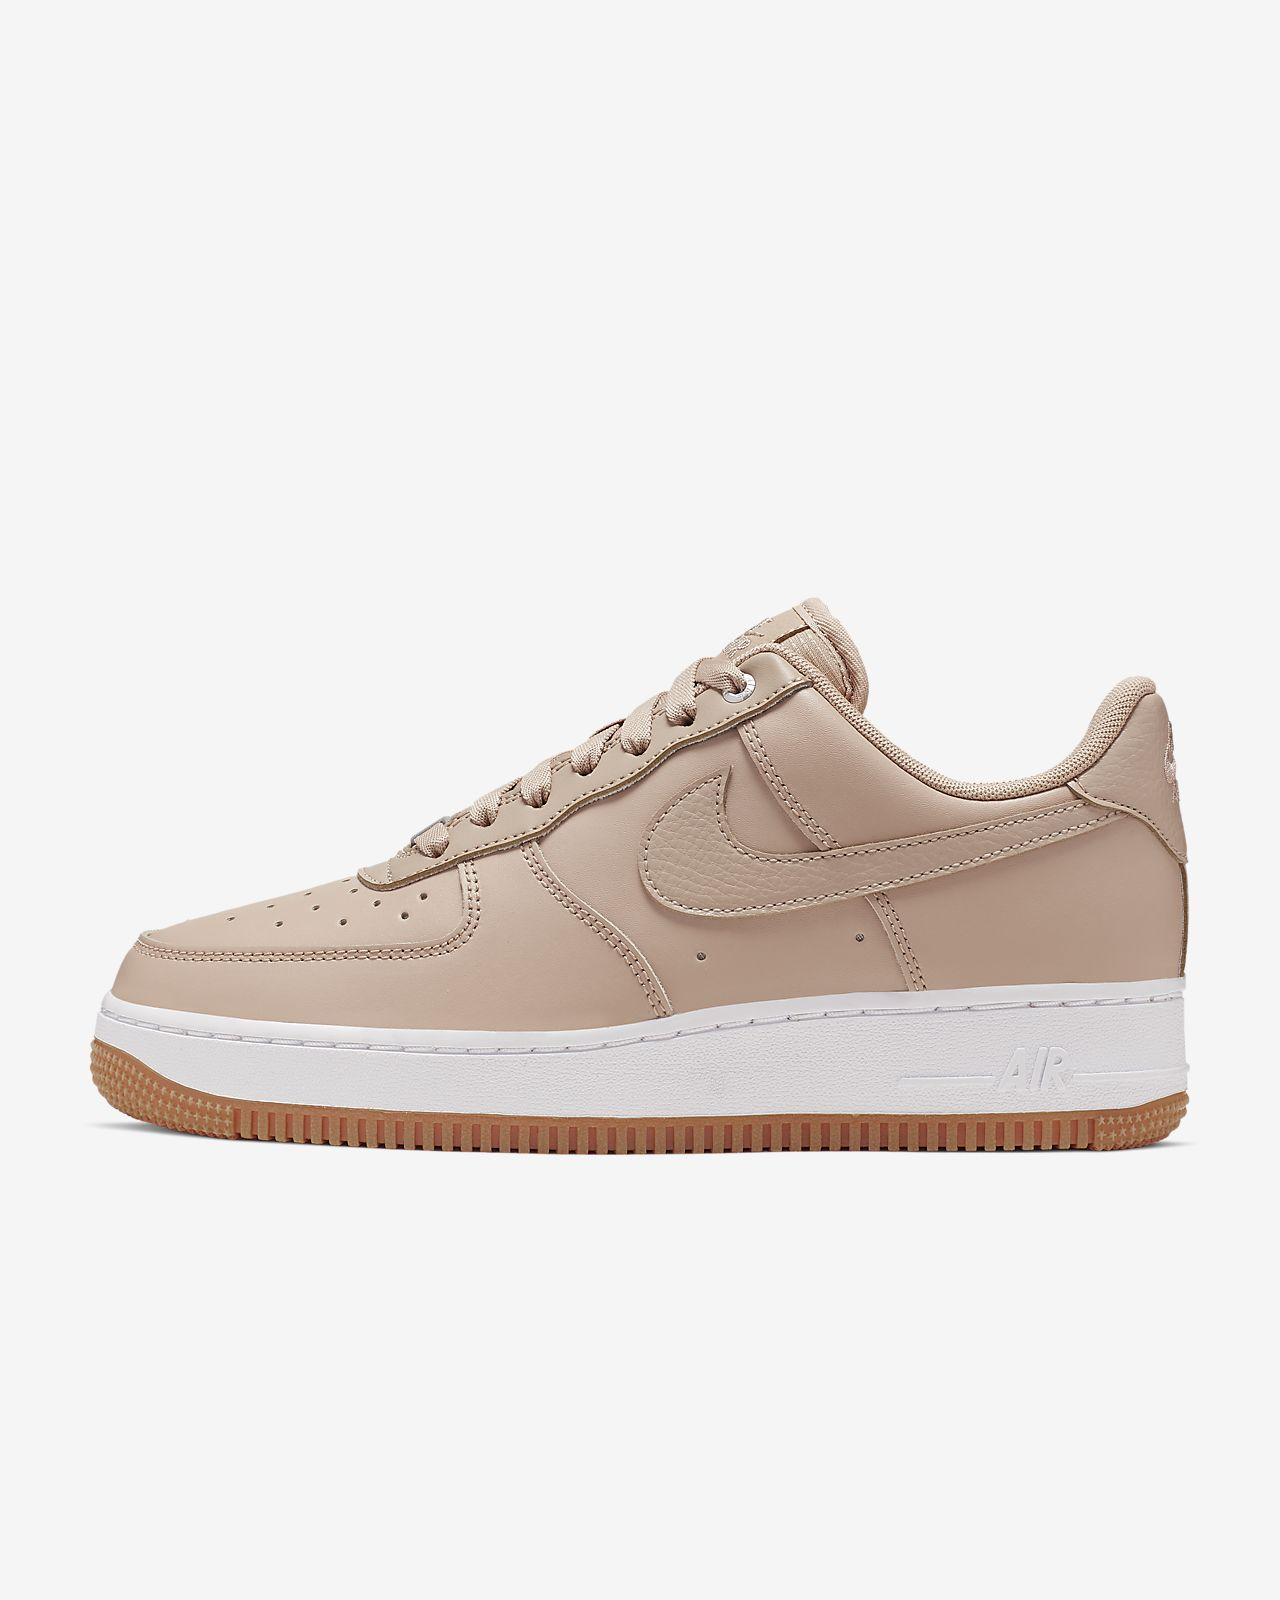 Air Force 1 '07 Low Premium Women's Shoe in 2019 | Air force